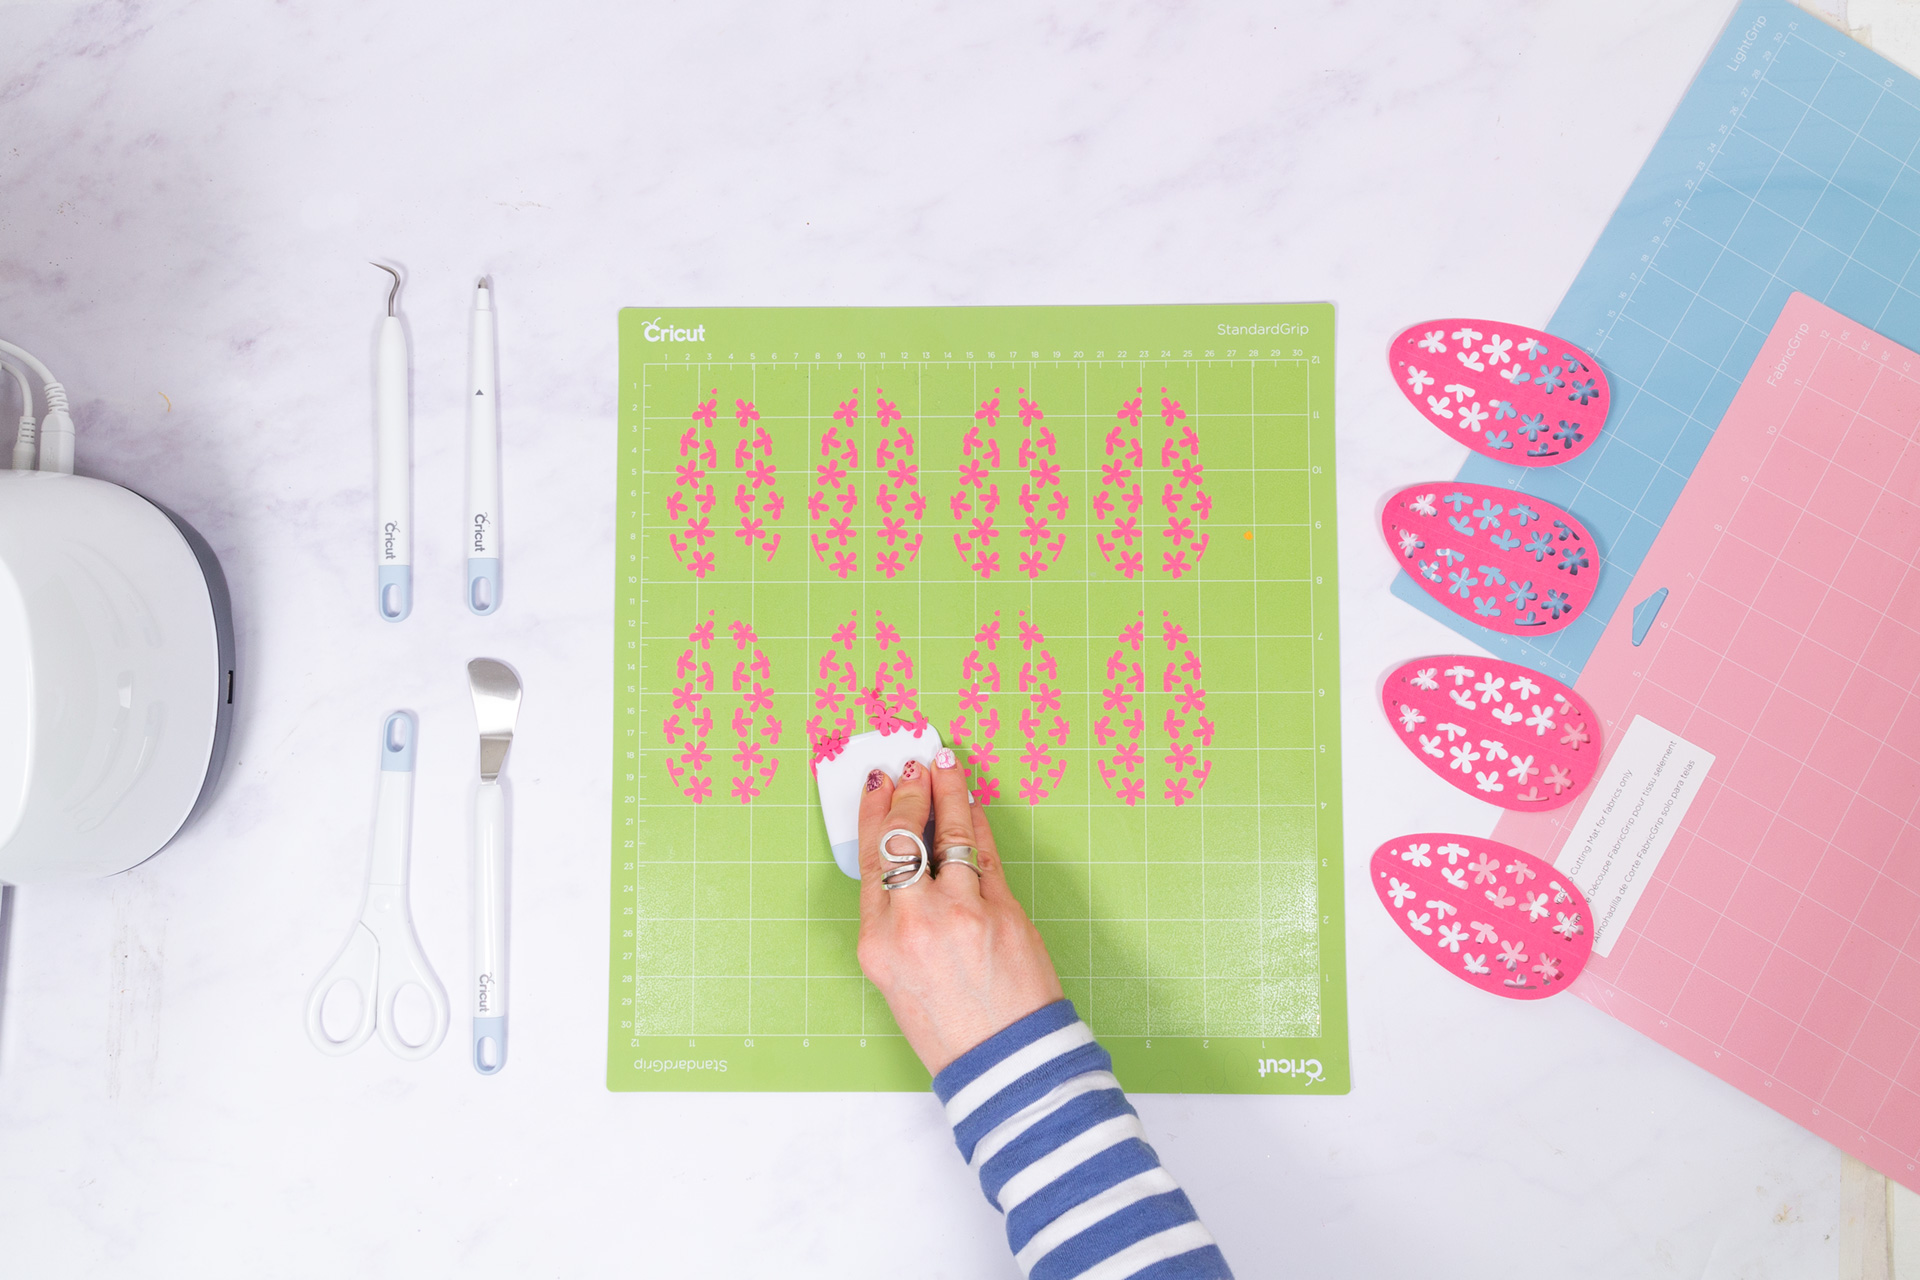 One of my favourite tools is the Cricut scraper tool